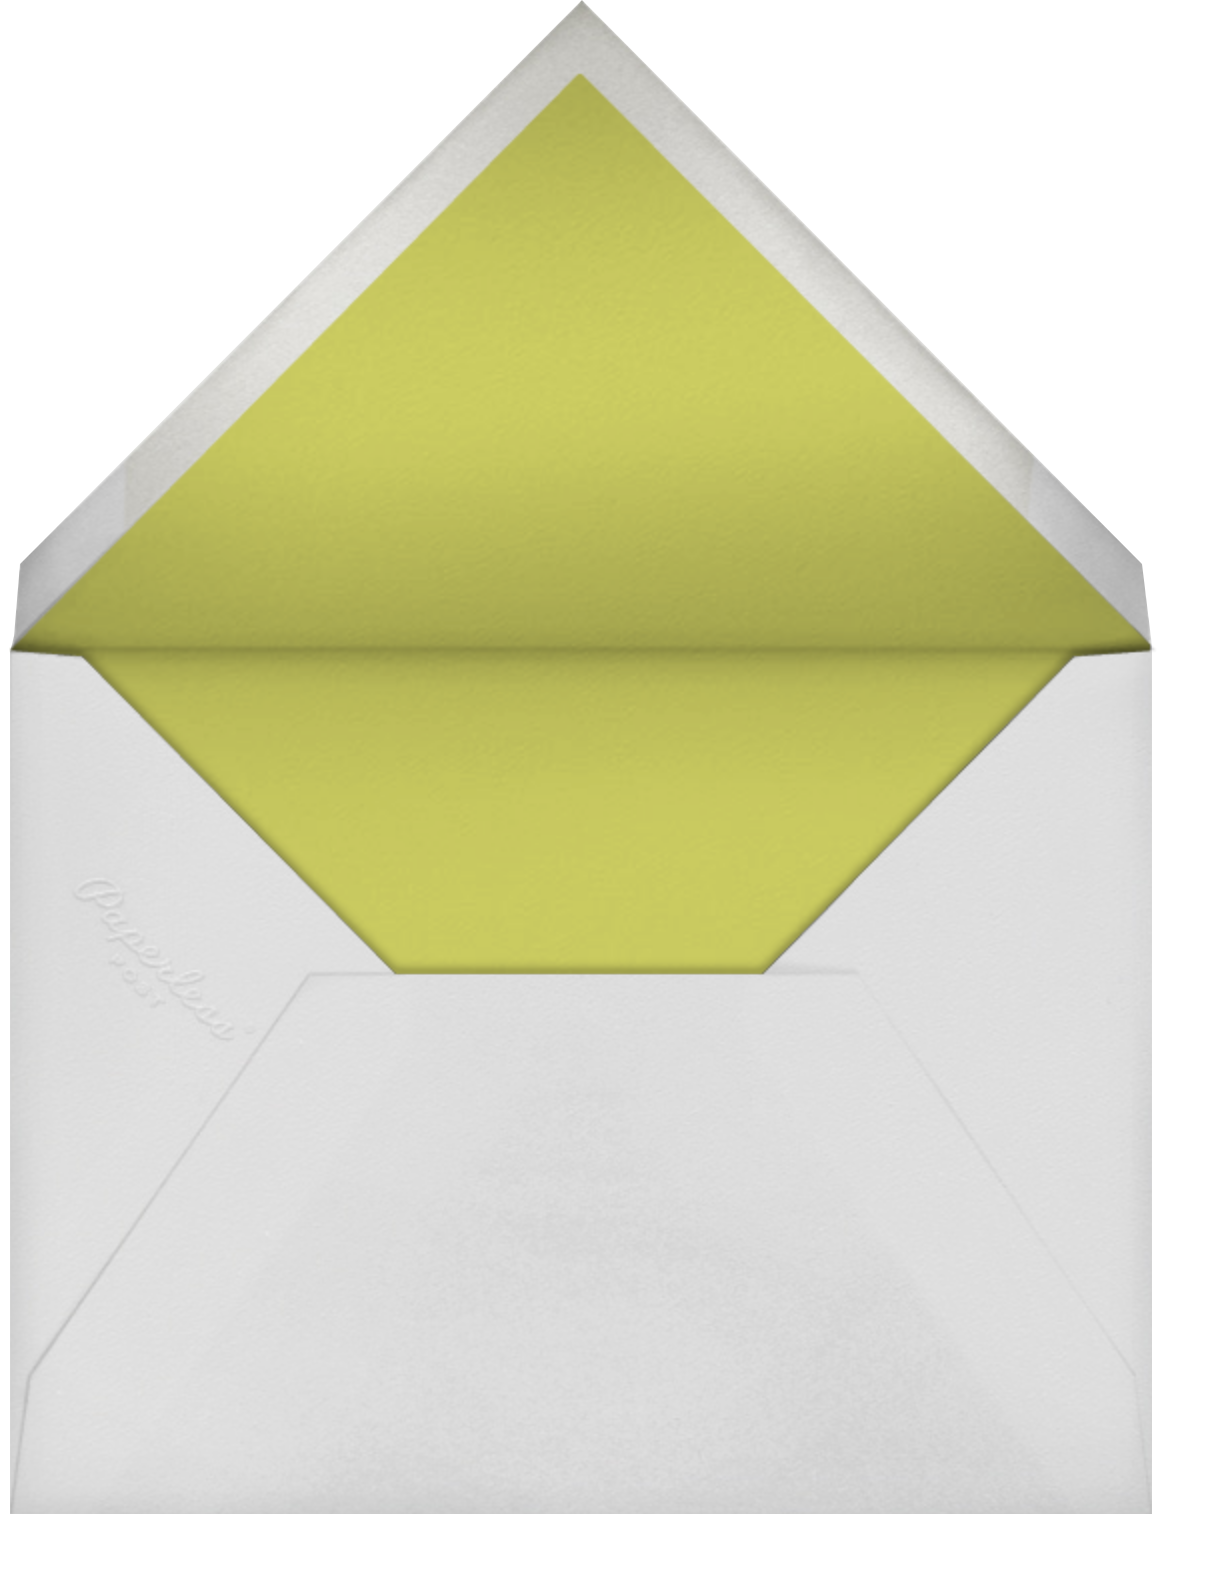 Cool Cat - Rifle Paper Co. - Just because - envelope back